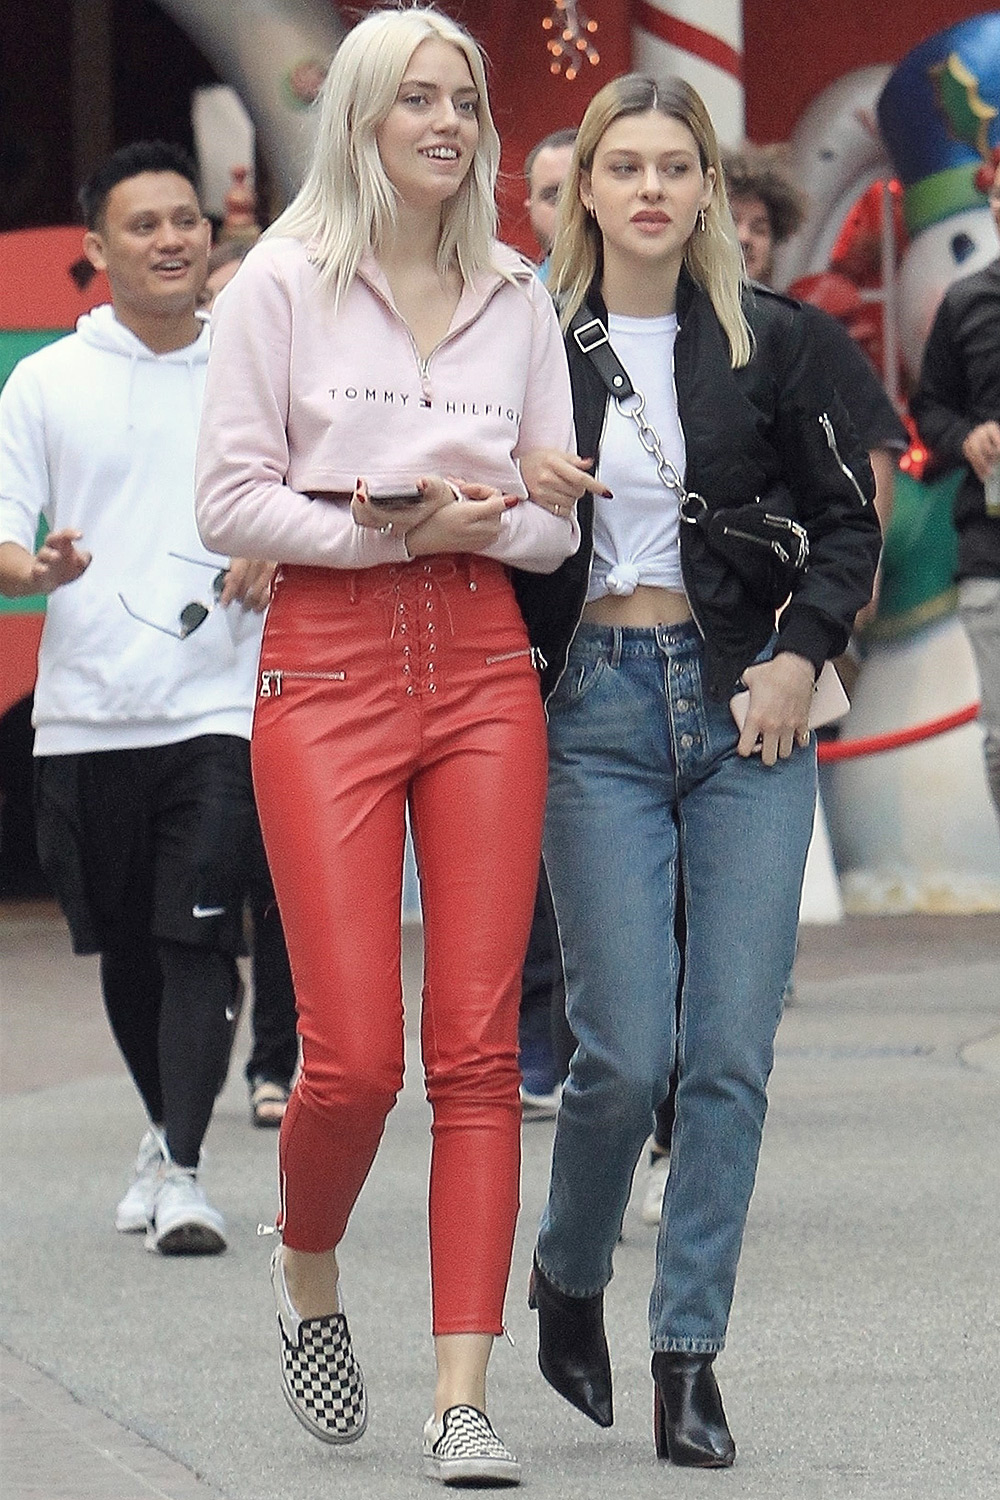 Nicola Peltz was spotted doing some shopping